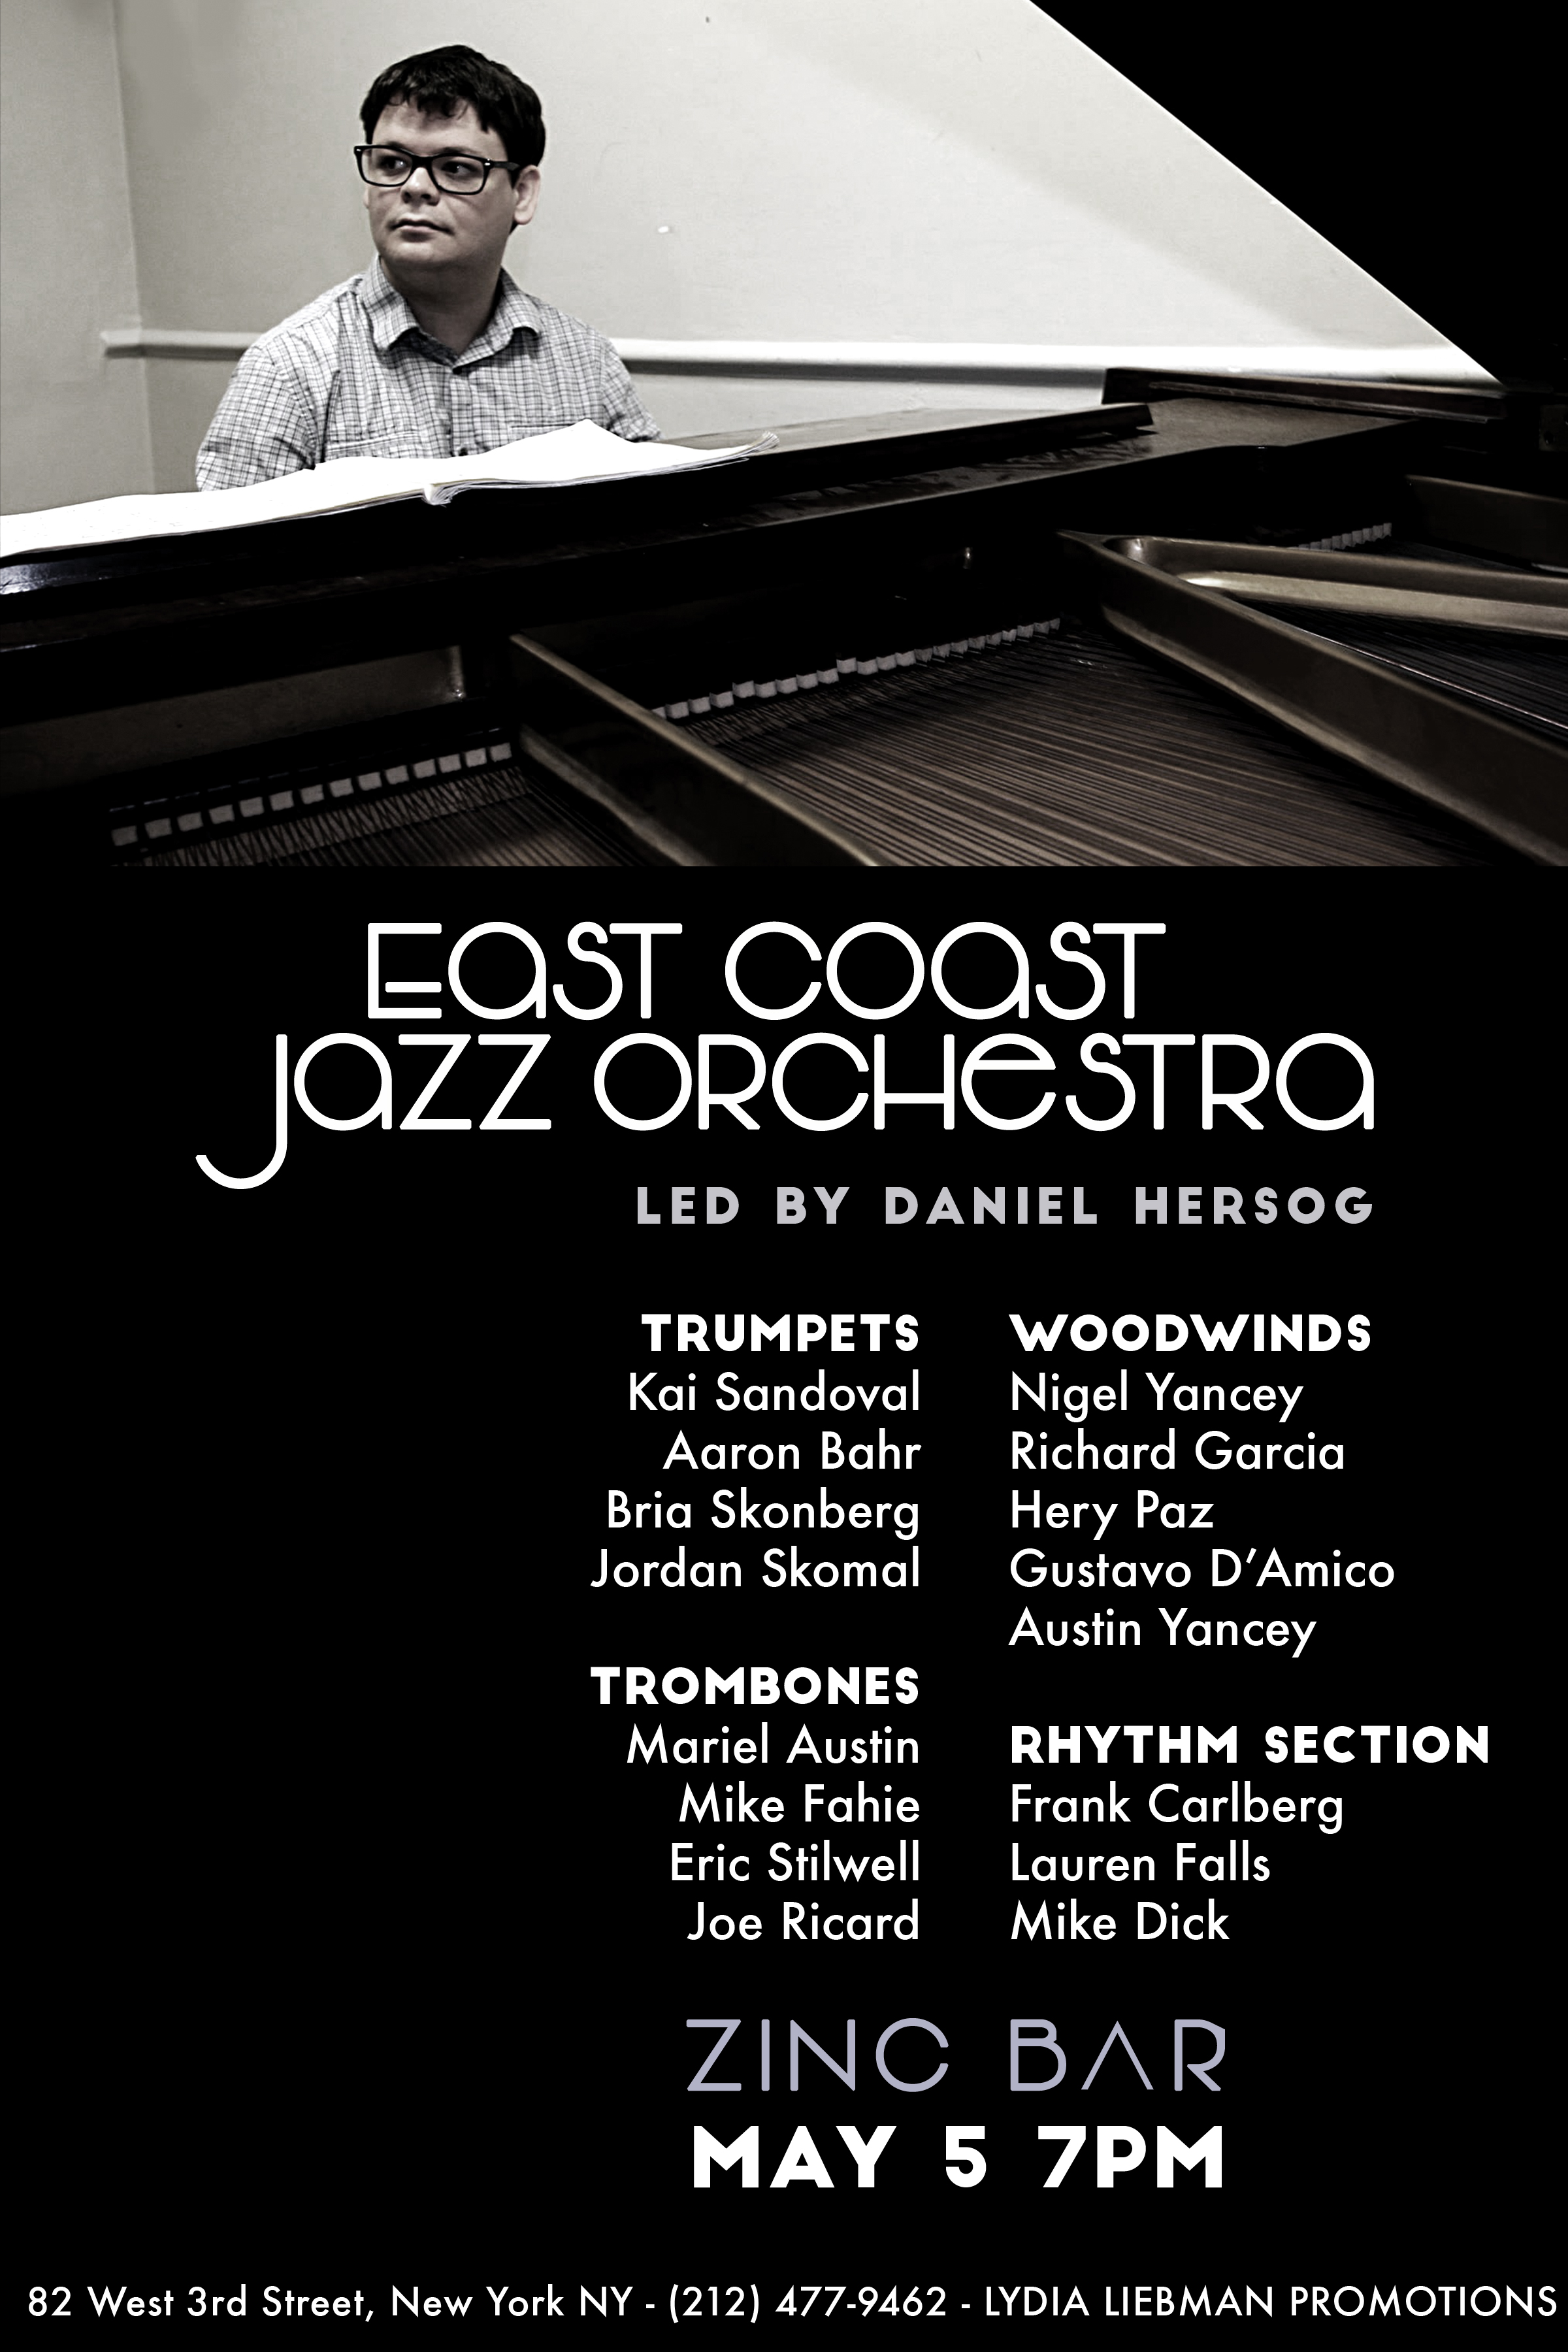 The Daniel Hersog East Coast Jazz Orchestra Comes to Zinc Bar on May 5